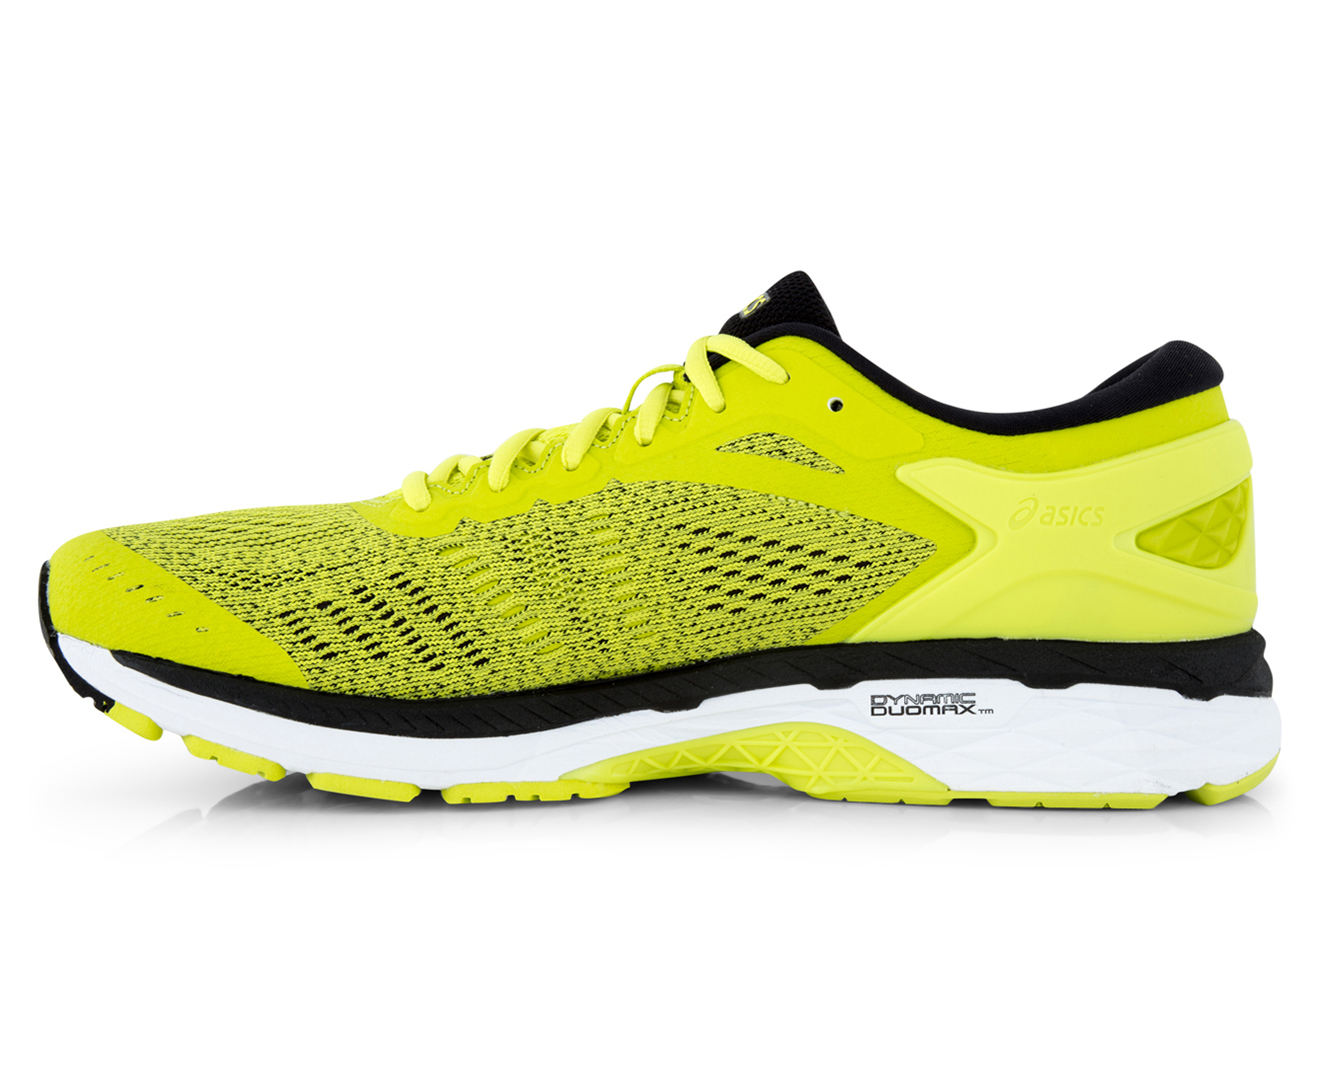 ASICS Men's GEL-Kayano 24 Shoe - Sulphur Spring/Black/White | Great daily  deals at Australia's favourite superstore | Catch.com.au